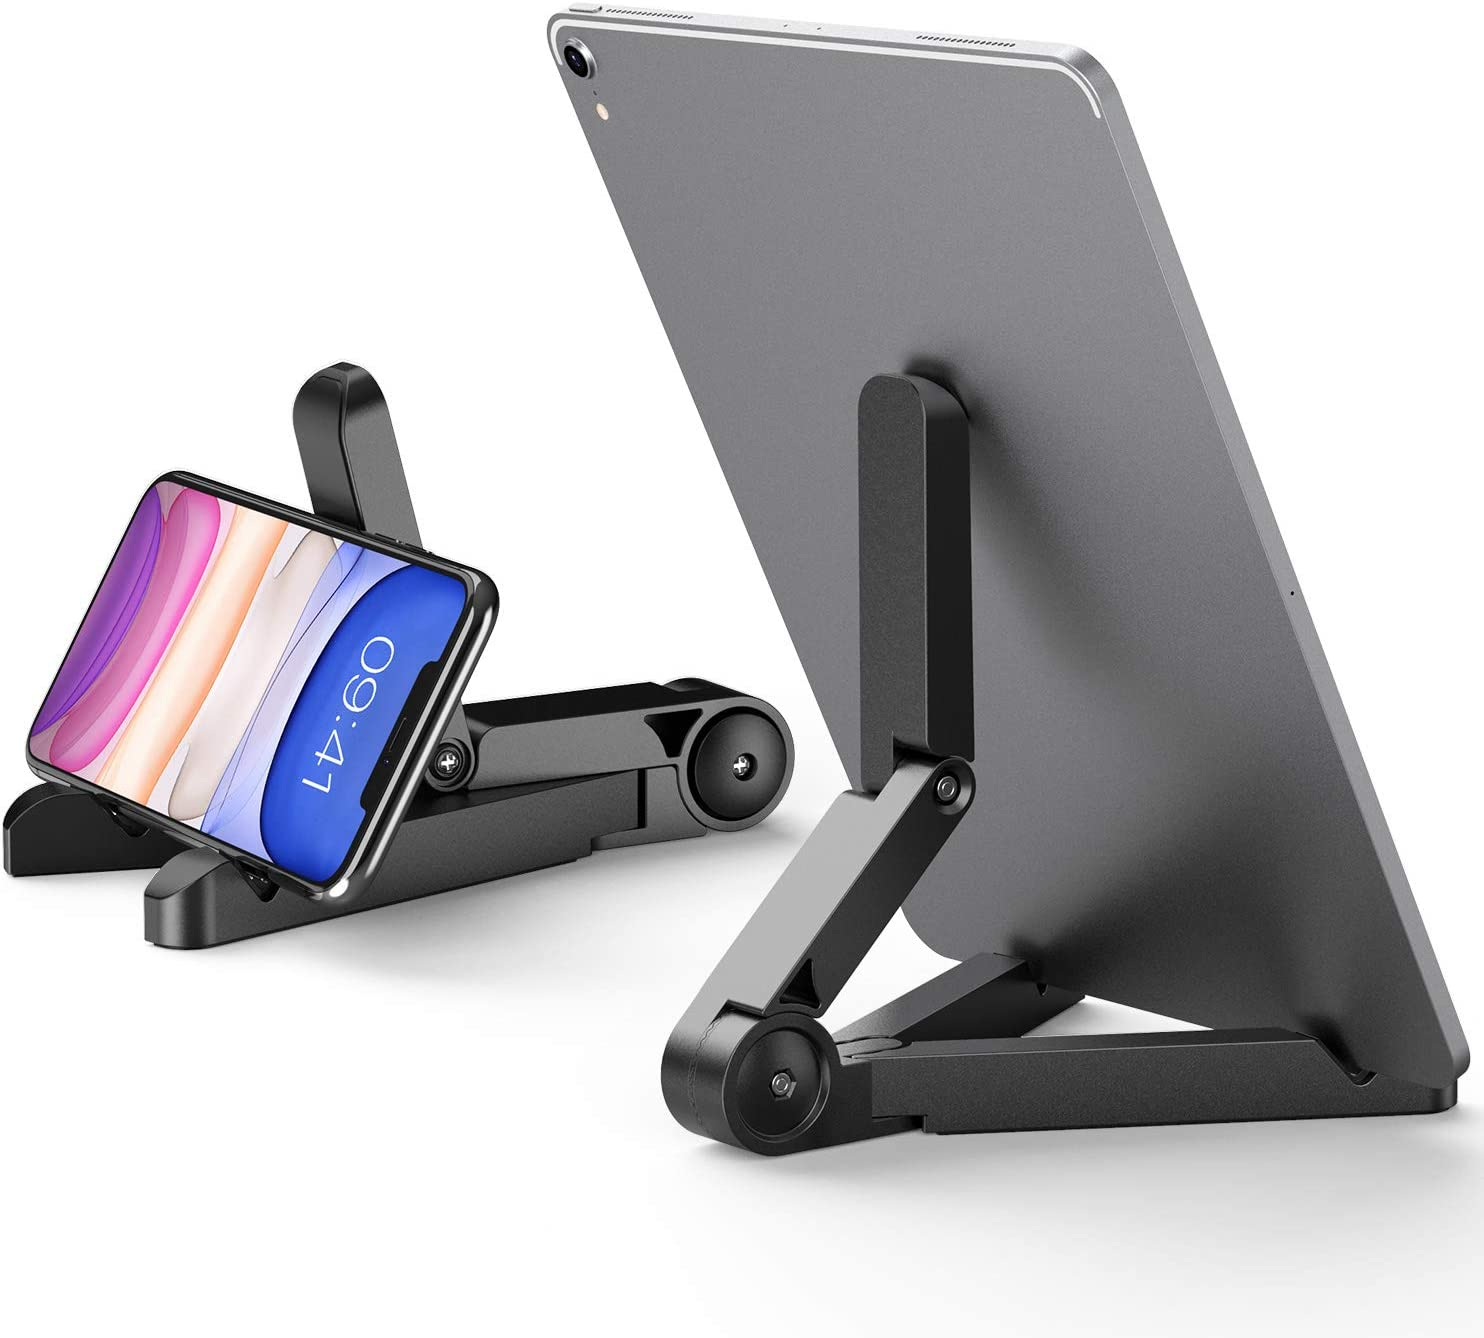 ORIbox Adjustable Stand for iPhone, iPad, Cell Phone Stand